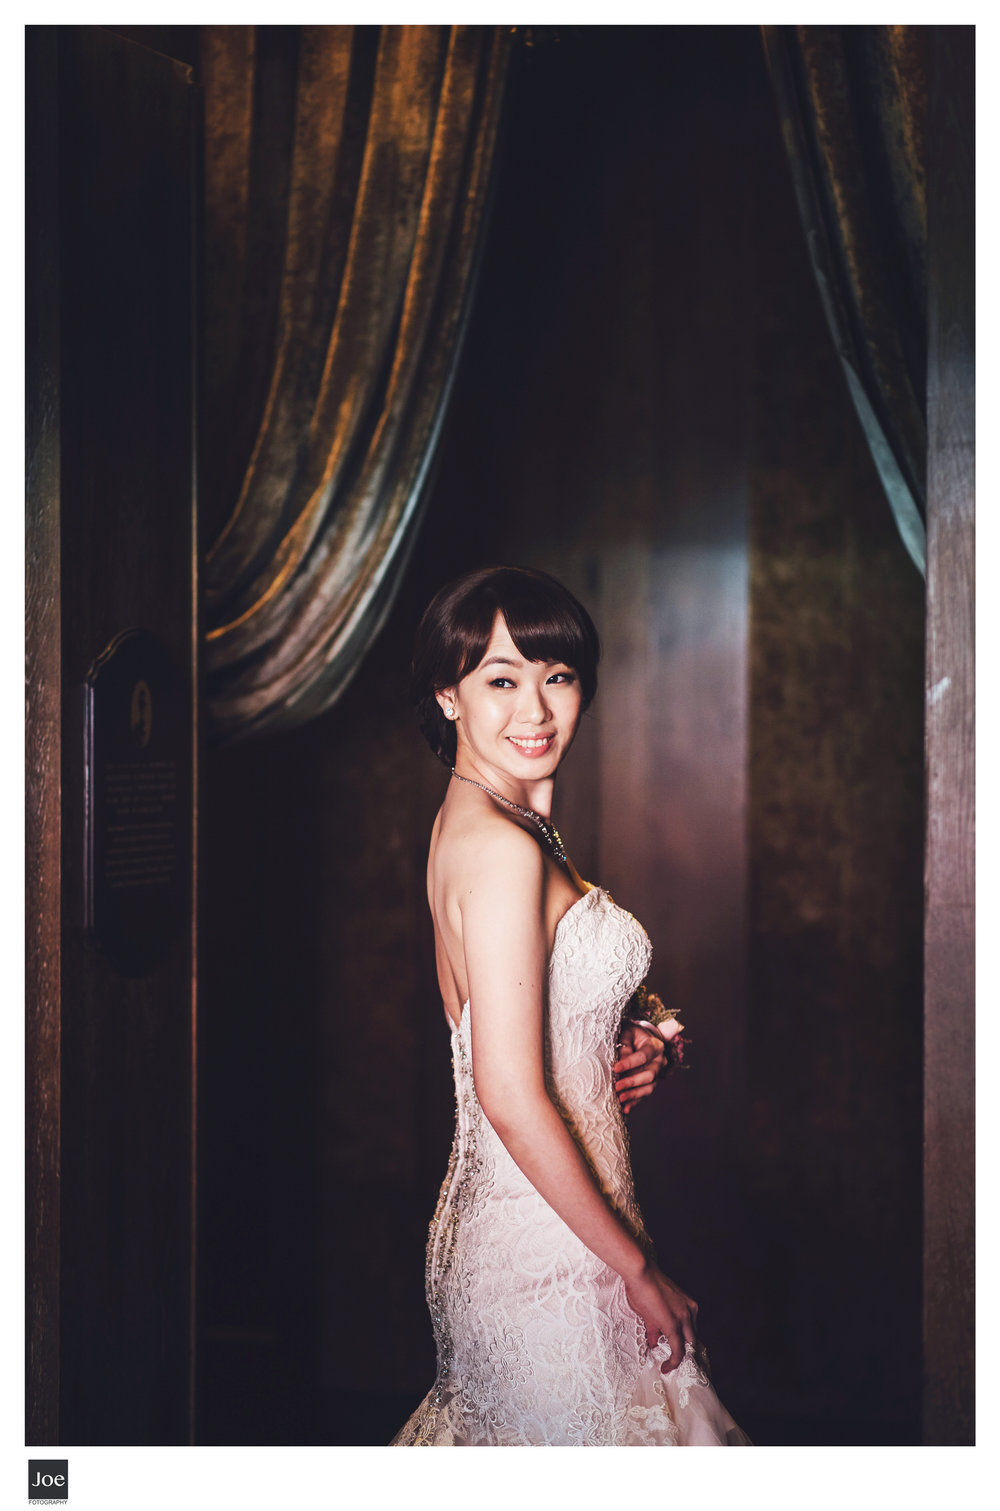 joe-fotography-wedding-palais-de-chine-hotel-11.jpg